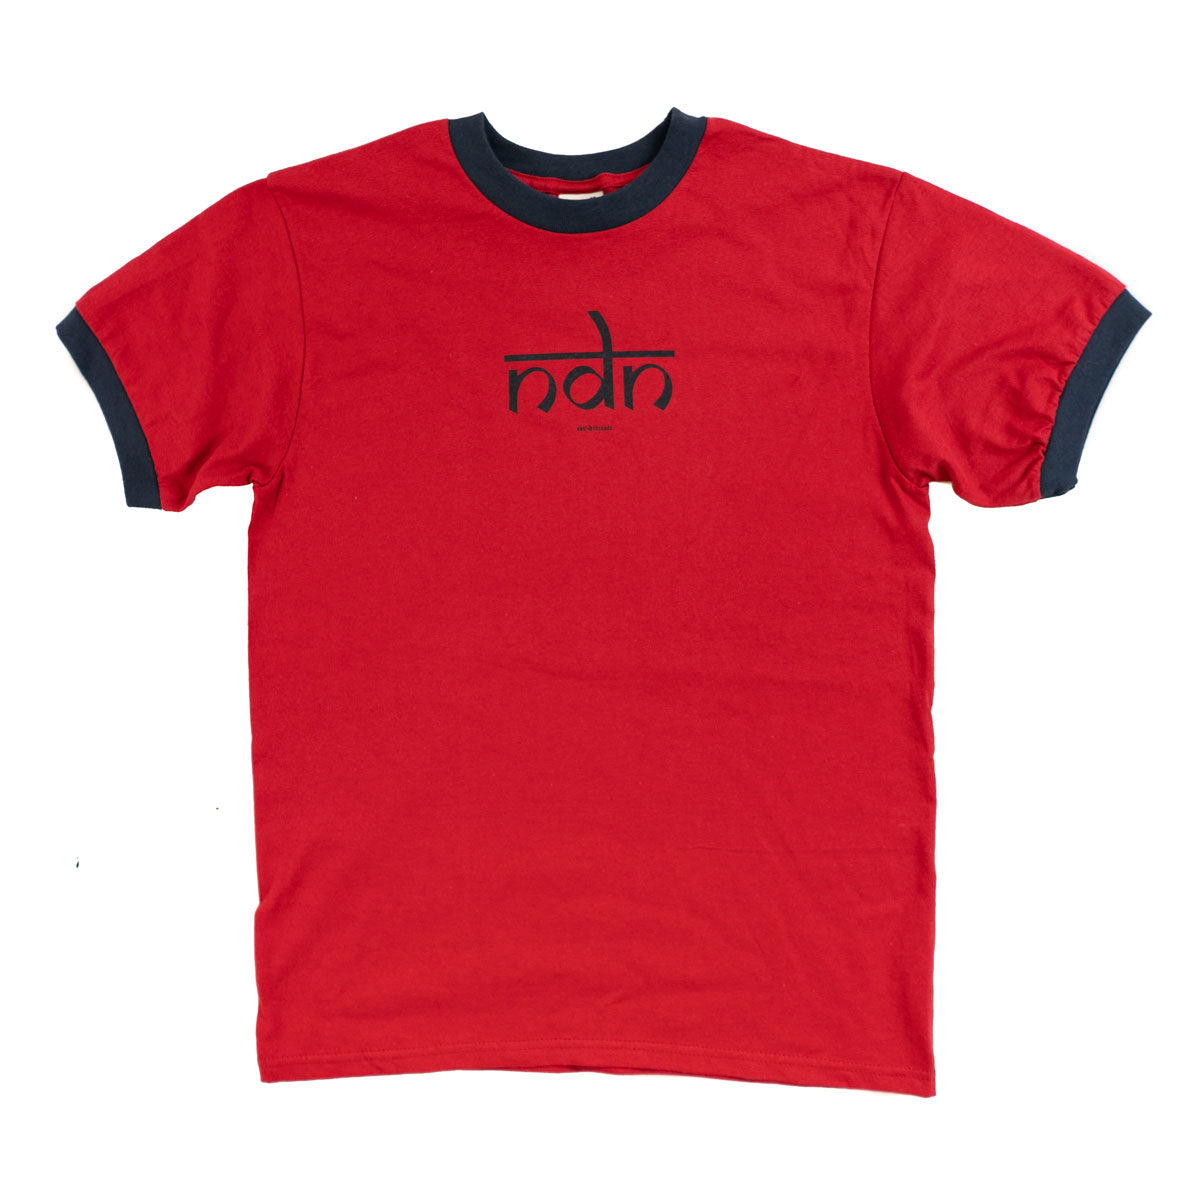 Ndn (Indian) Men's Ringer Tee